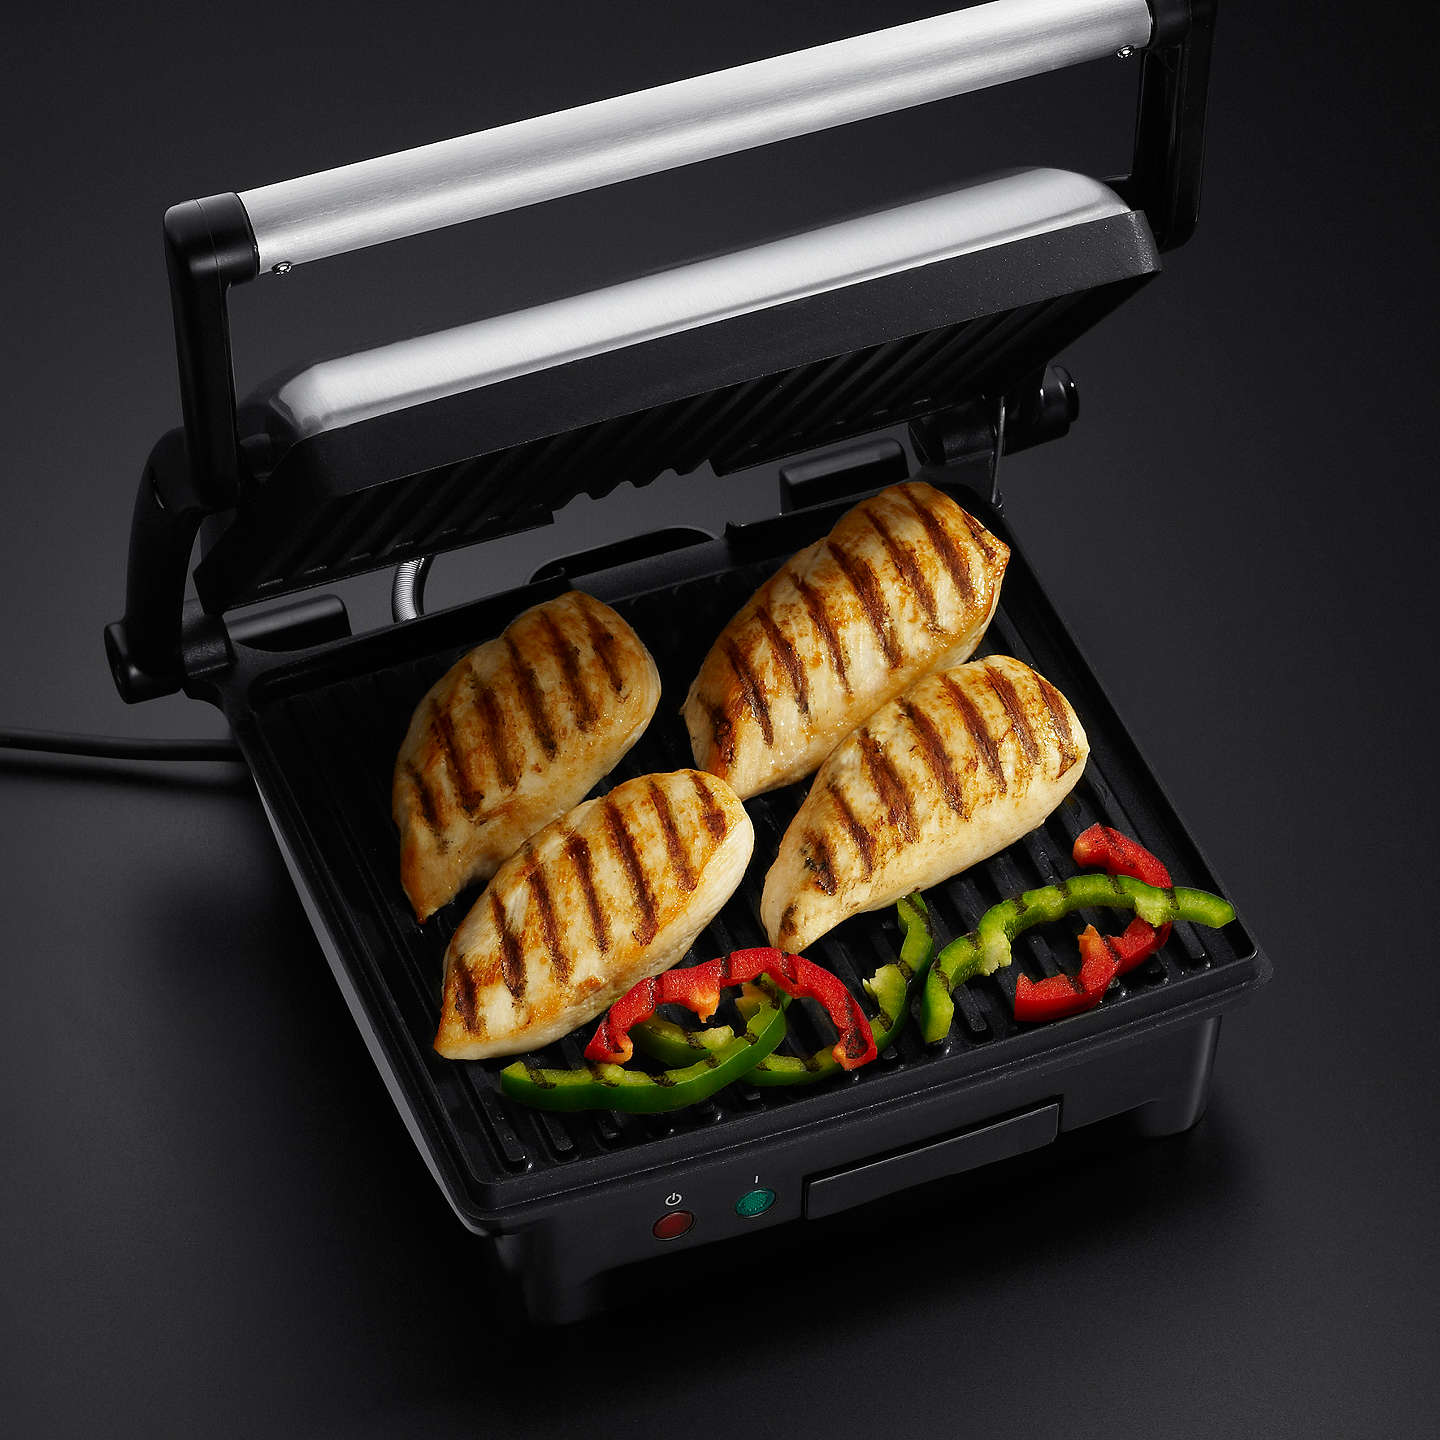 russell hobbs cook at home 3 in 1 panini maker grill and griddle at john lewis. Black Bedroom Furniture Sets. Home Design Ideas